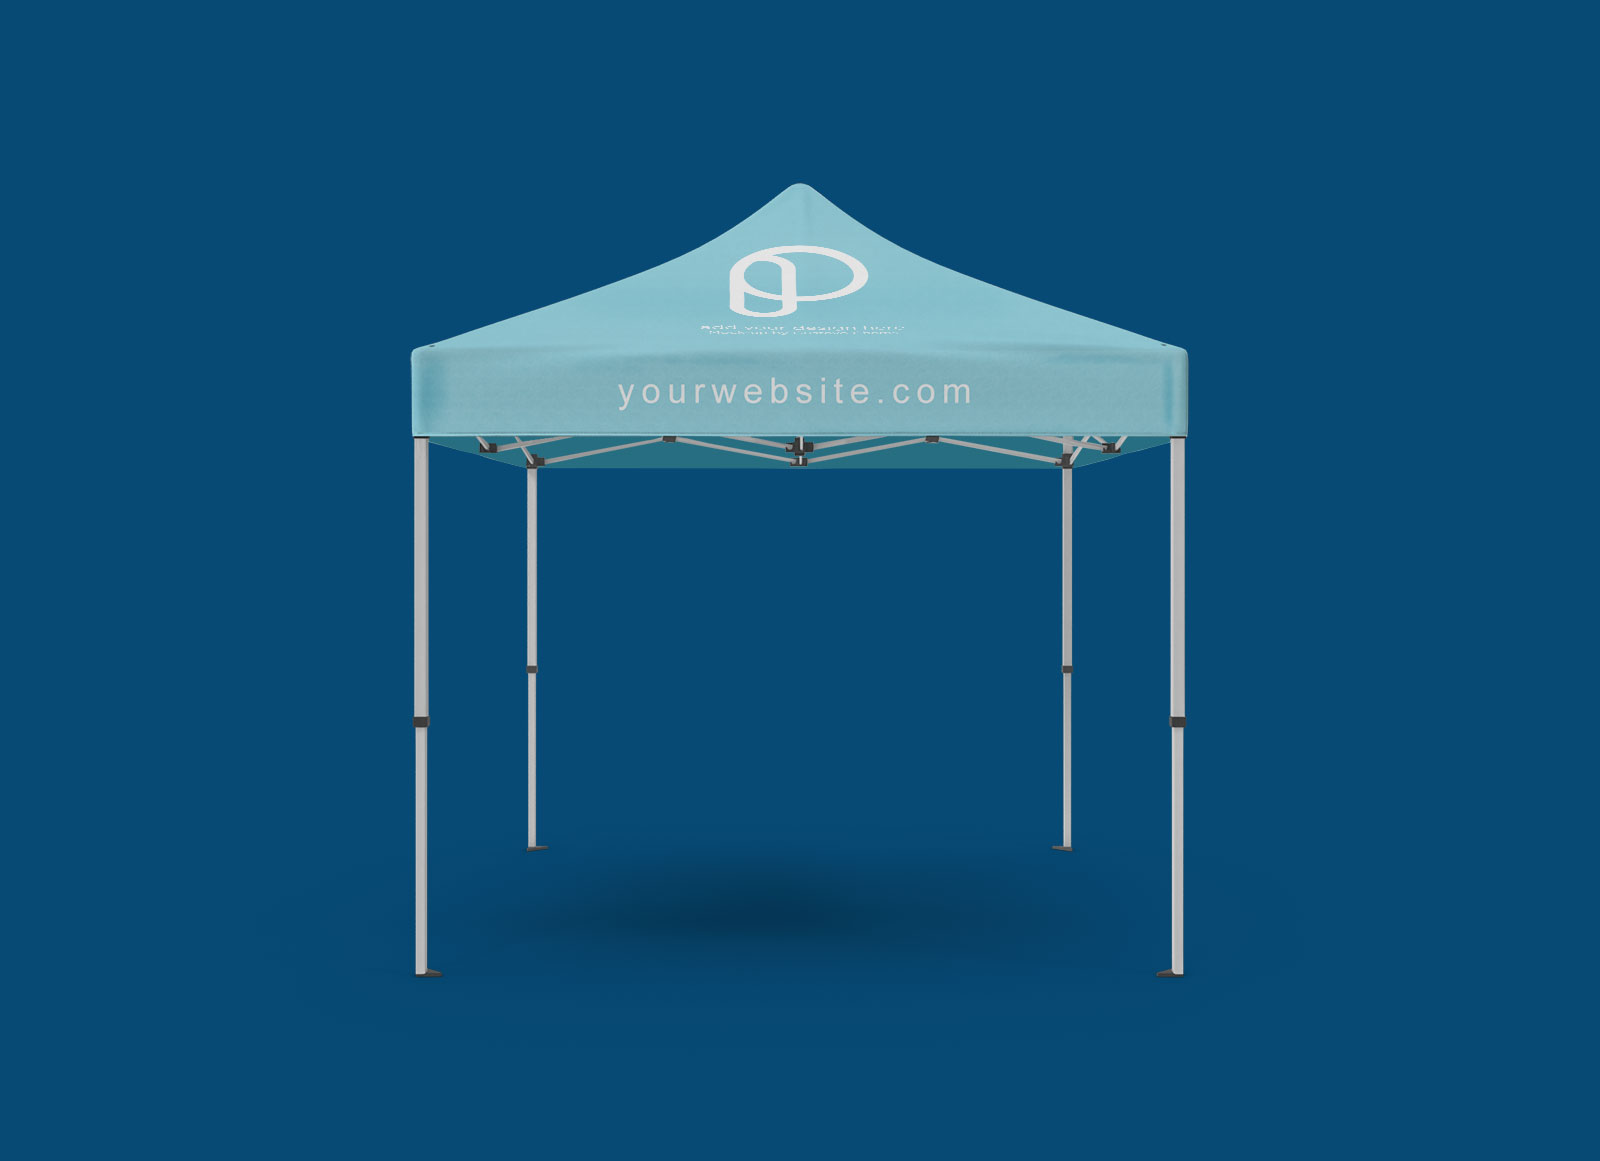 Free-Square-Canopy-Tent-Mockup-PSD